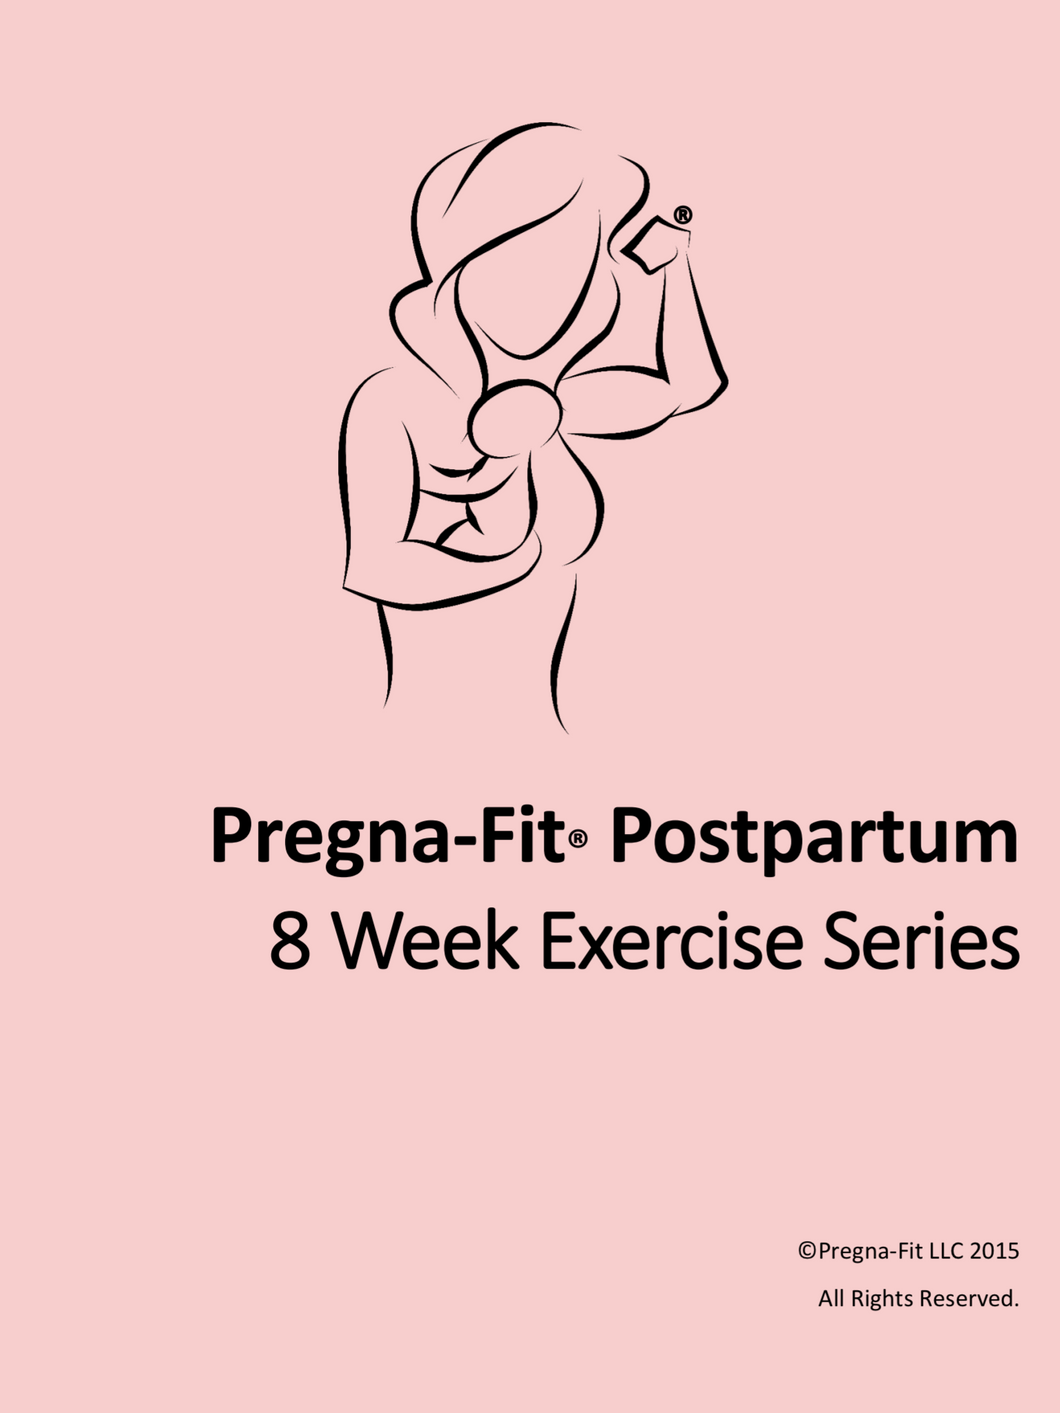 Pregna-Fit Postpartum: 8 Week Home Workout Program